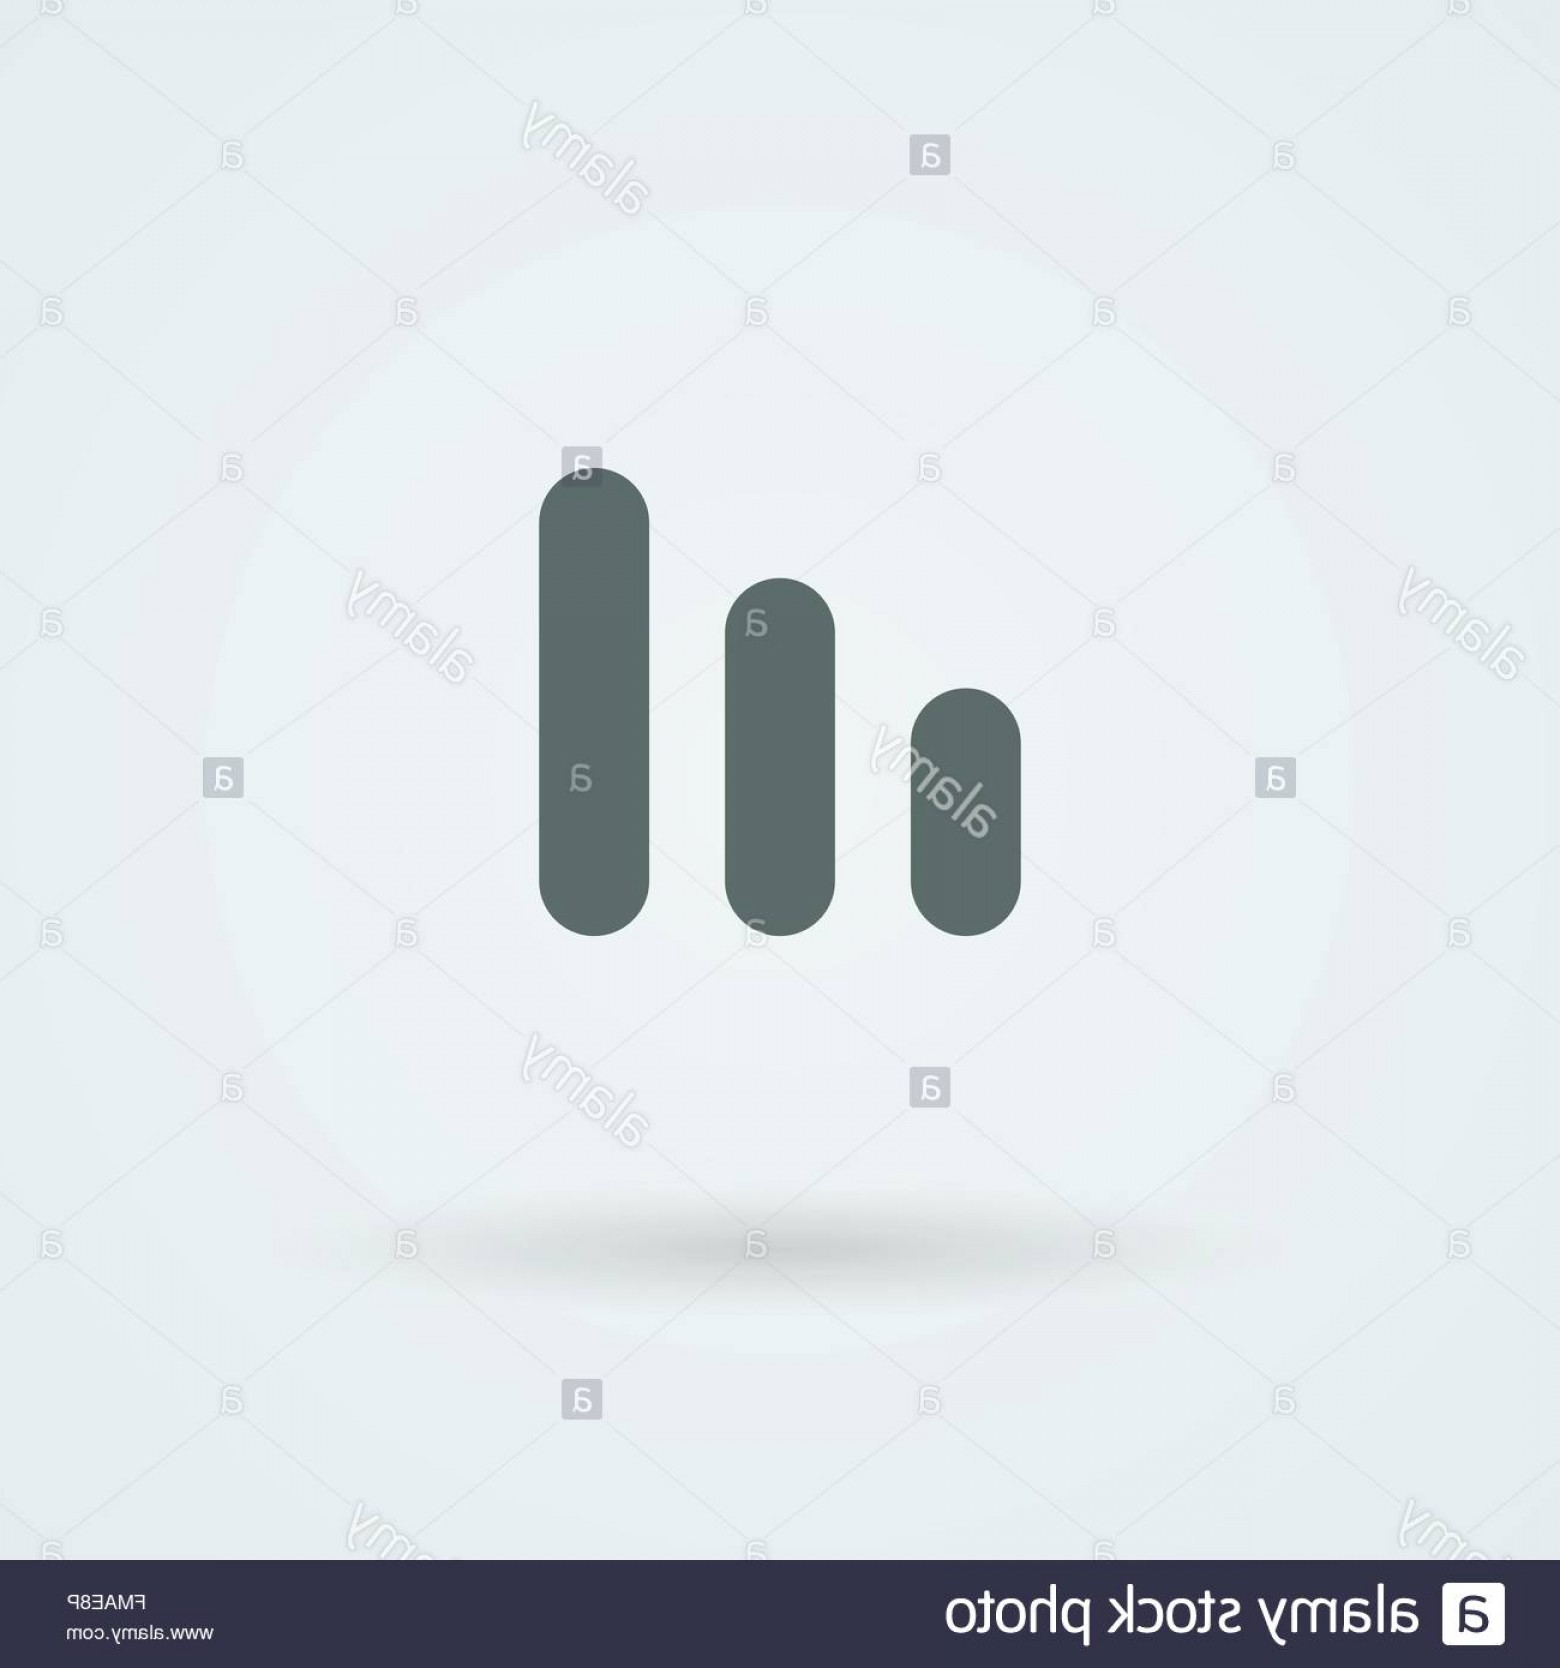 Equalizer Vector Icons: Stock Photo Minimalistic Vector Icons Volume Or Equalizer